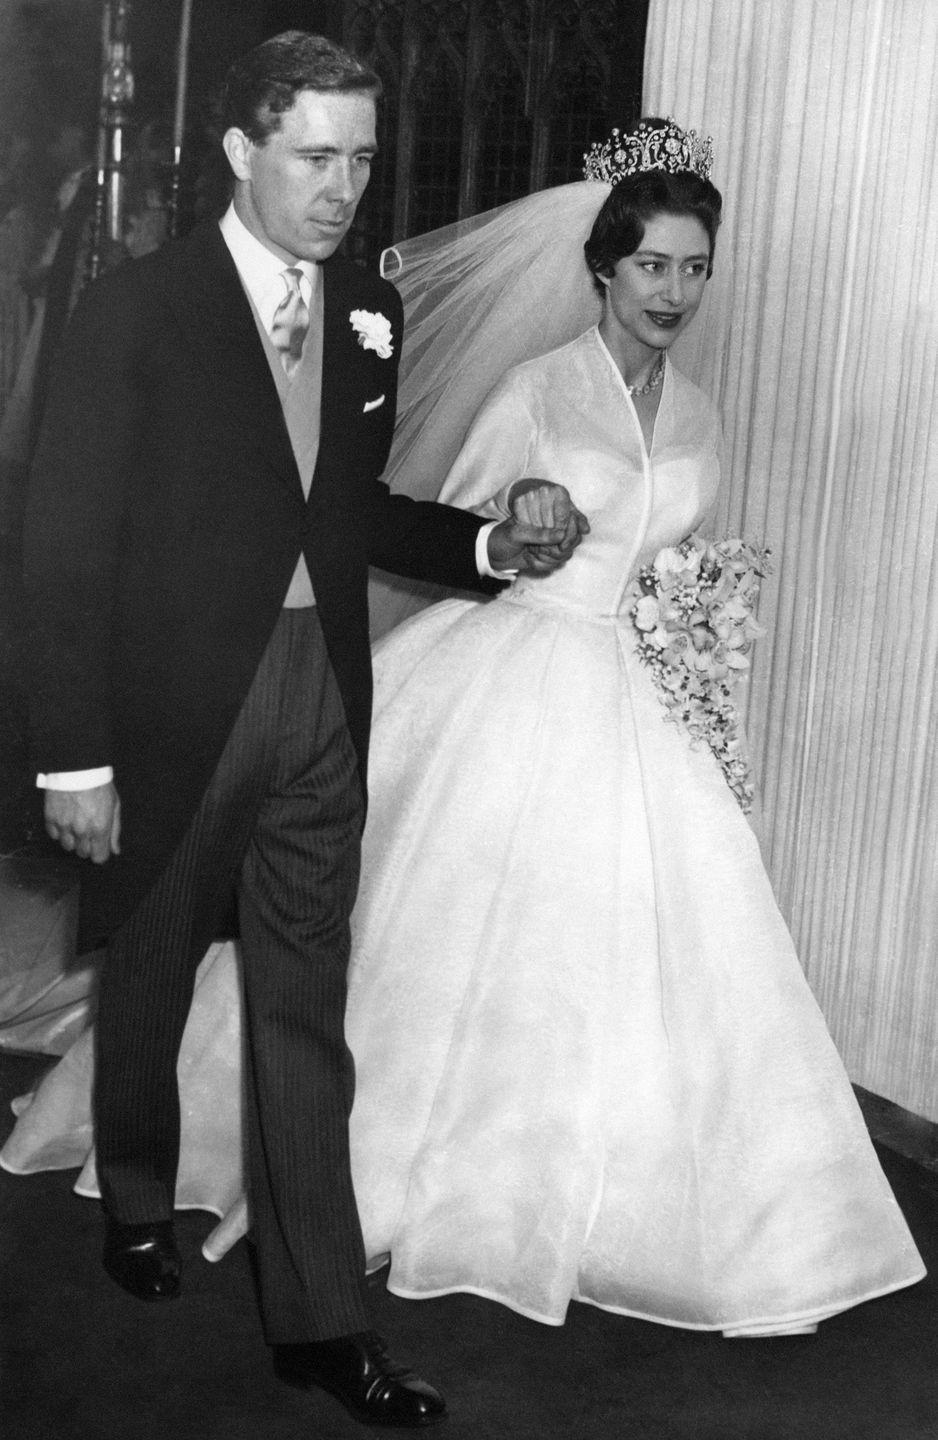 <p>Another royal wedding rolled around in 1960, when Princess Margaret joined Antony Armstrong-Jones at the alter in Westminster Abbey. The Queen's younger sister wore the Poltimore tiara with a cathedral length veil and a silk organza gown. On their wedding day, her husband earned the title of the 1st Earl of Snowdon. </p>